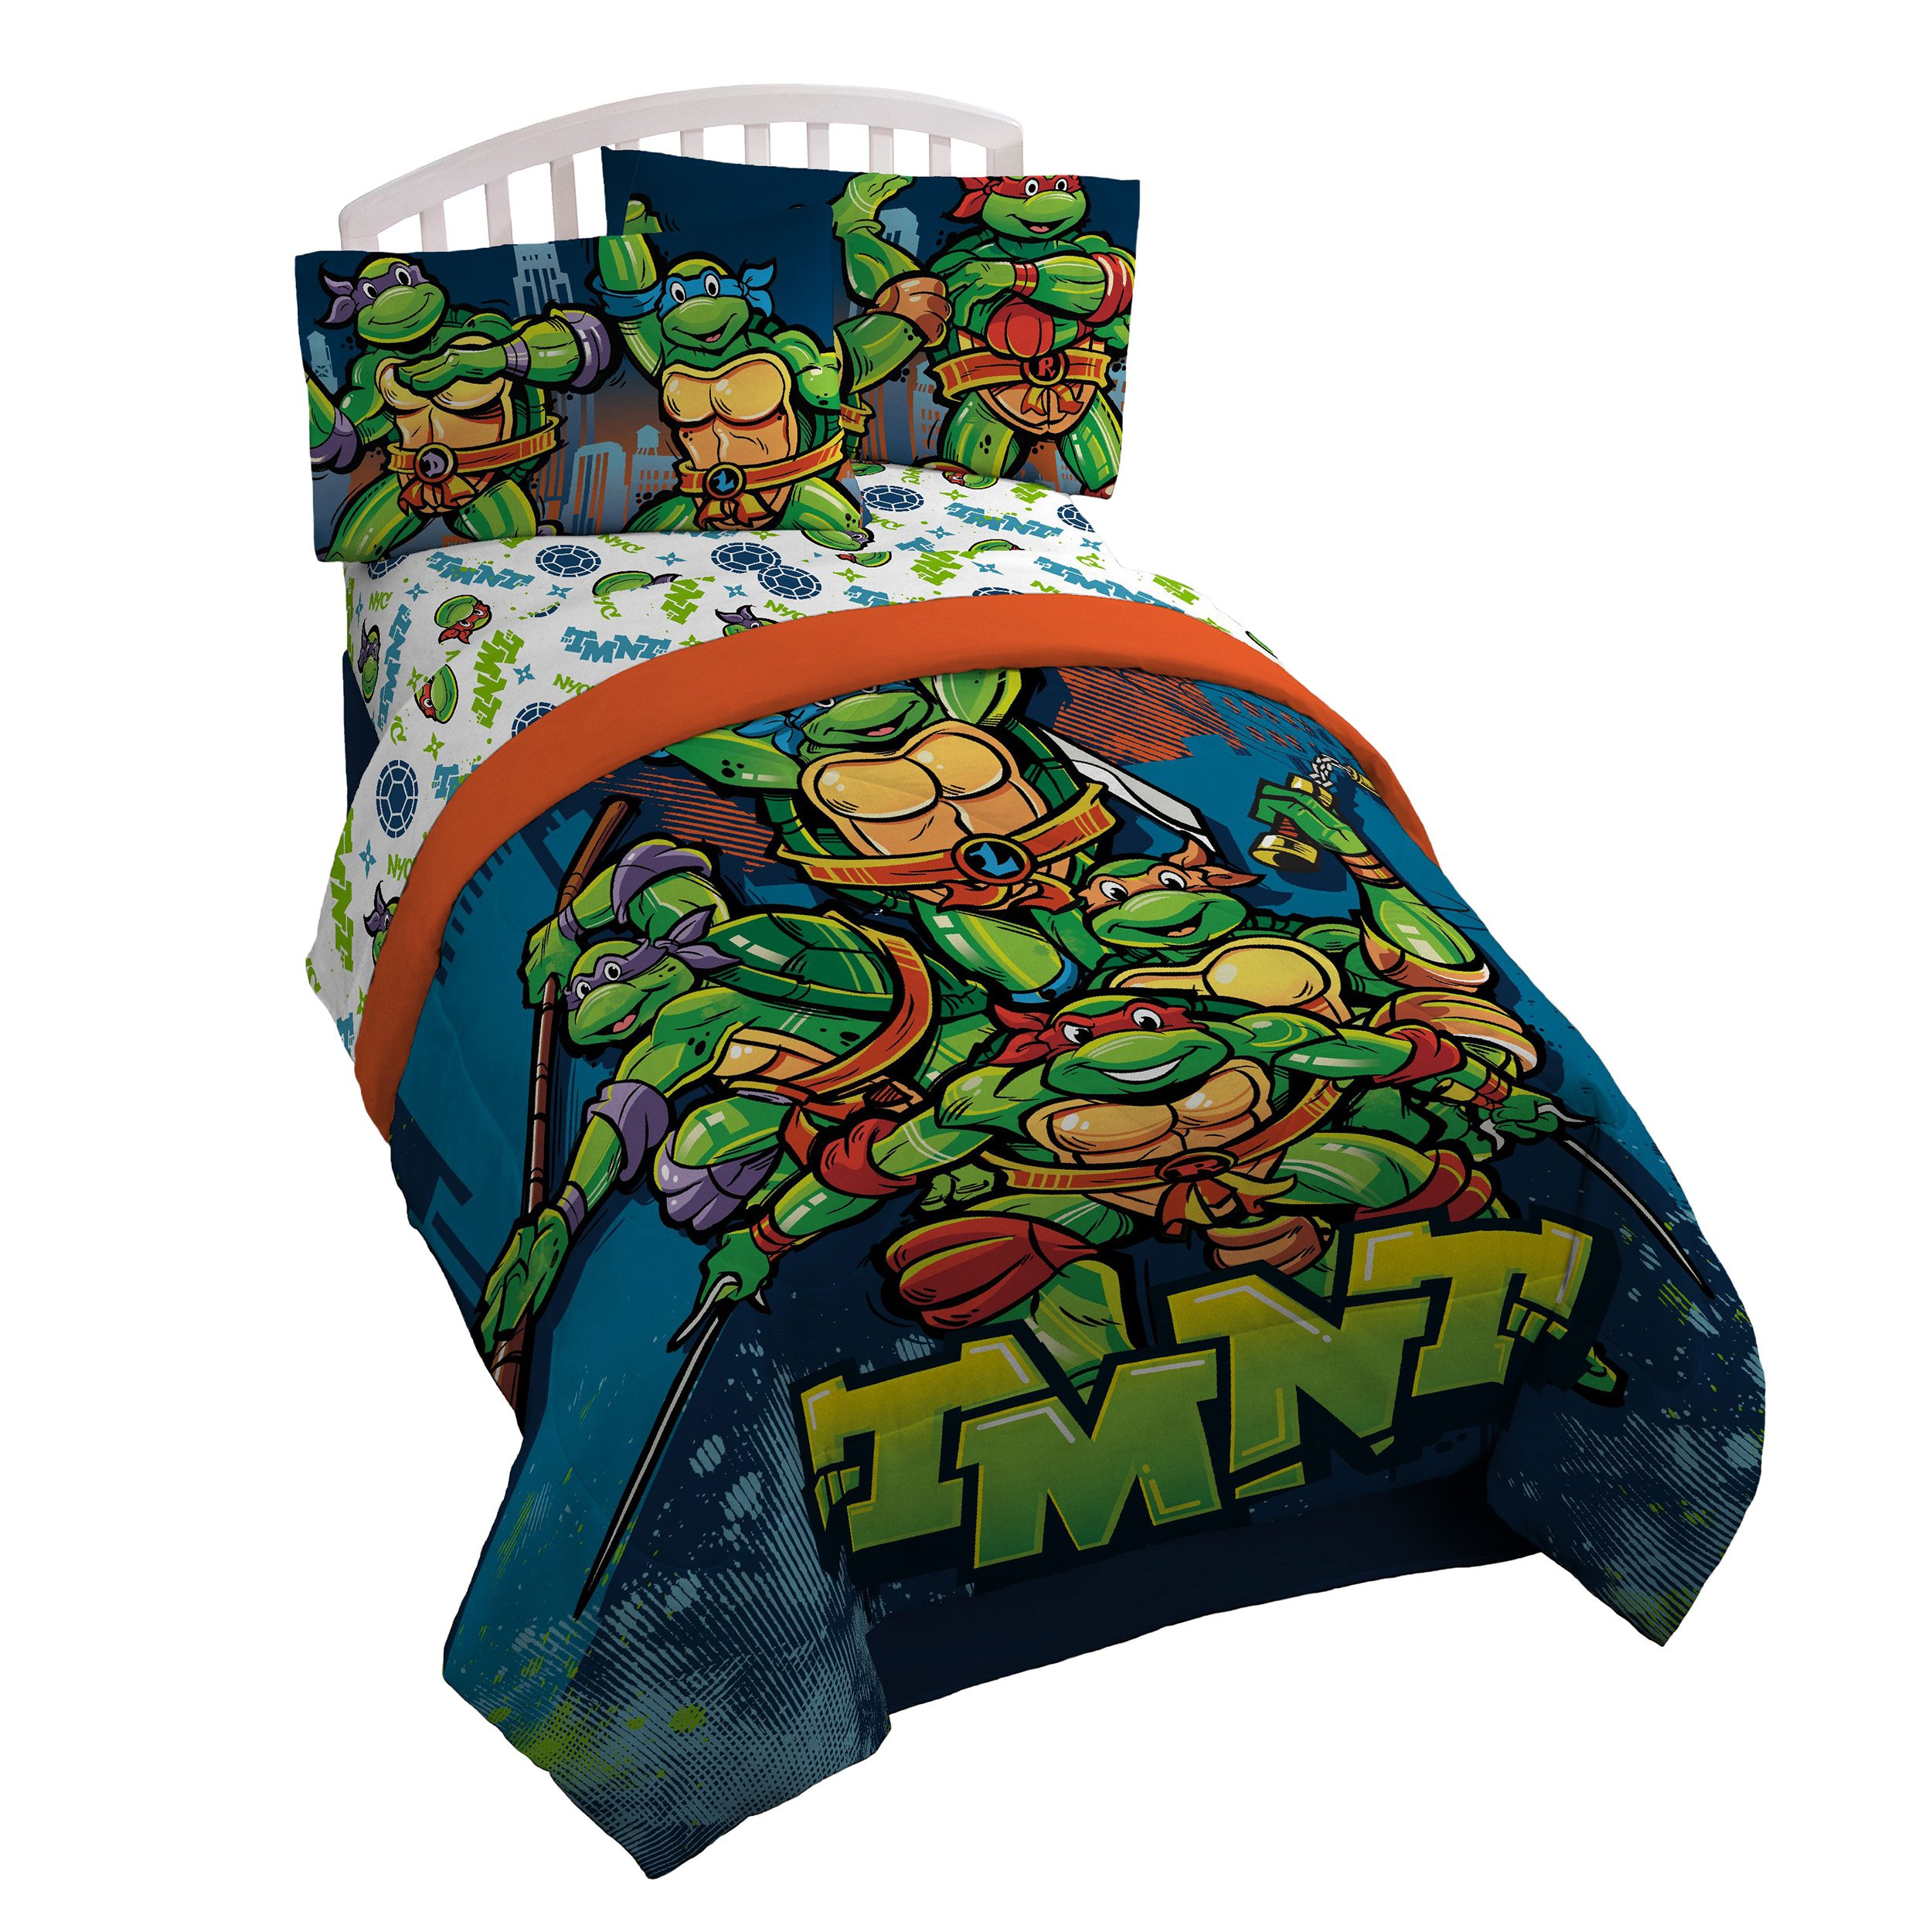 Nickelodeon Teenage Mutant Ninja Turtles Twin/Full Reversible Comforter by Nickelodeon